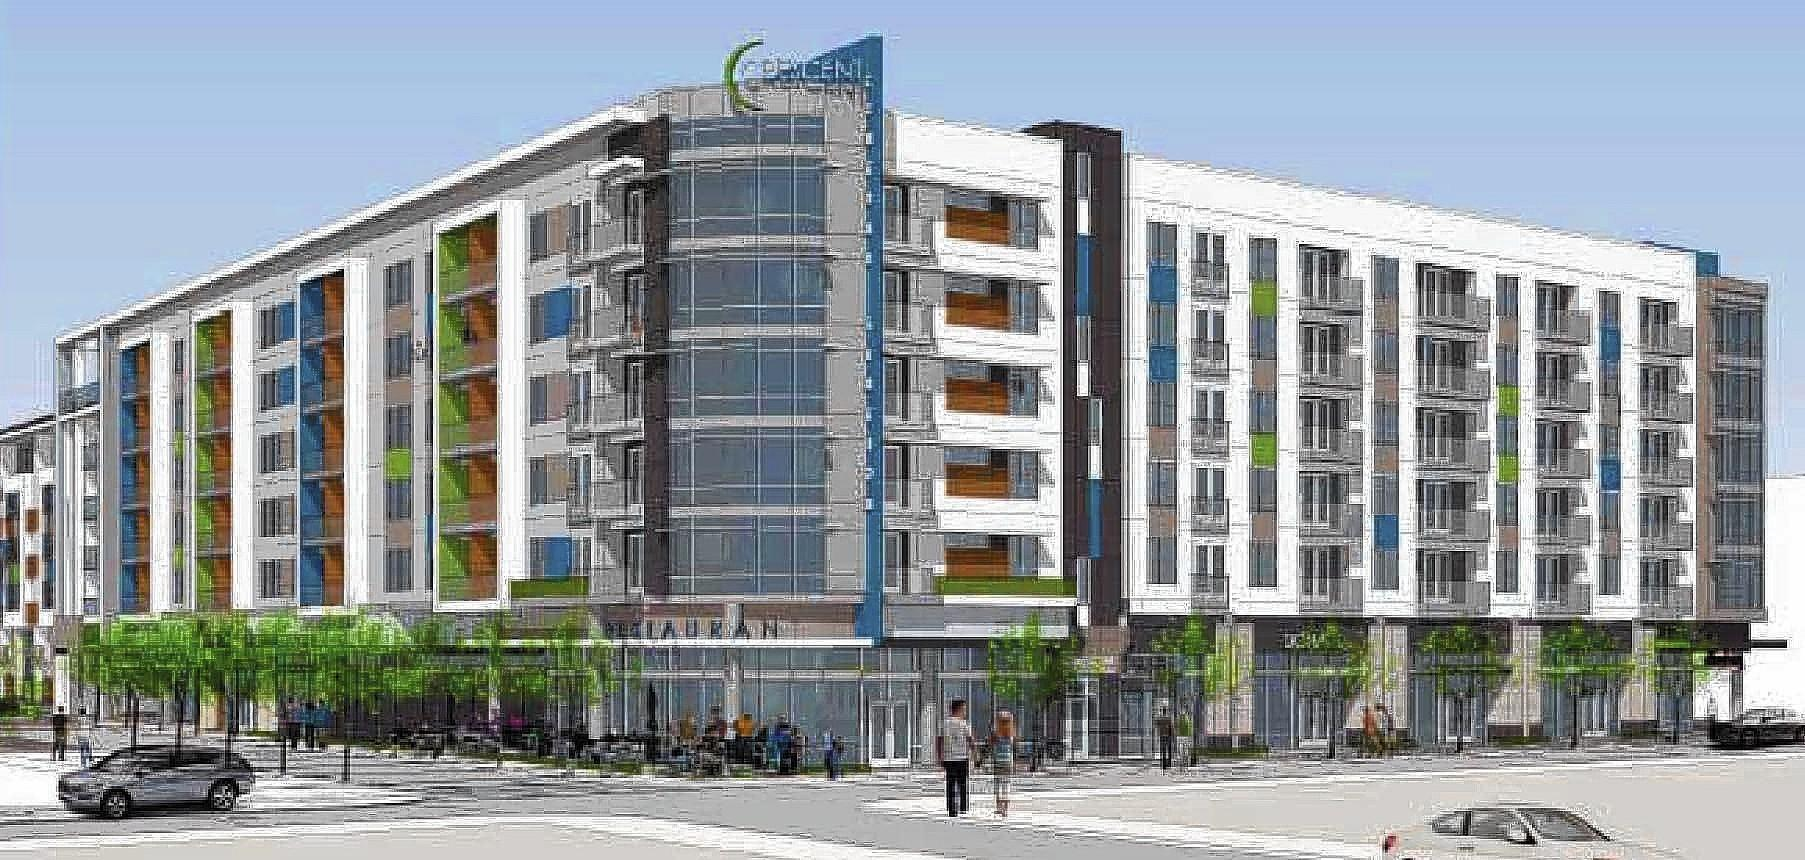 The first phase of the Crescent at Central Station includes a six-story apartment building at the corner of Orange Avenue and Amelia Street.